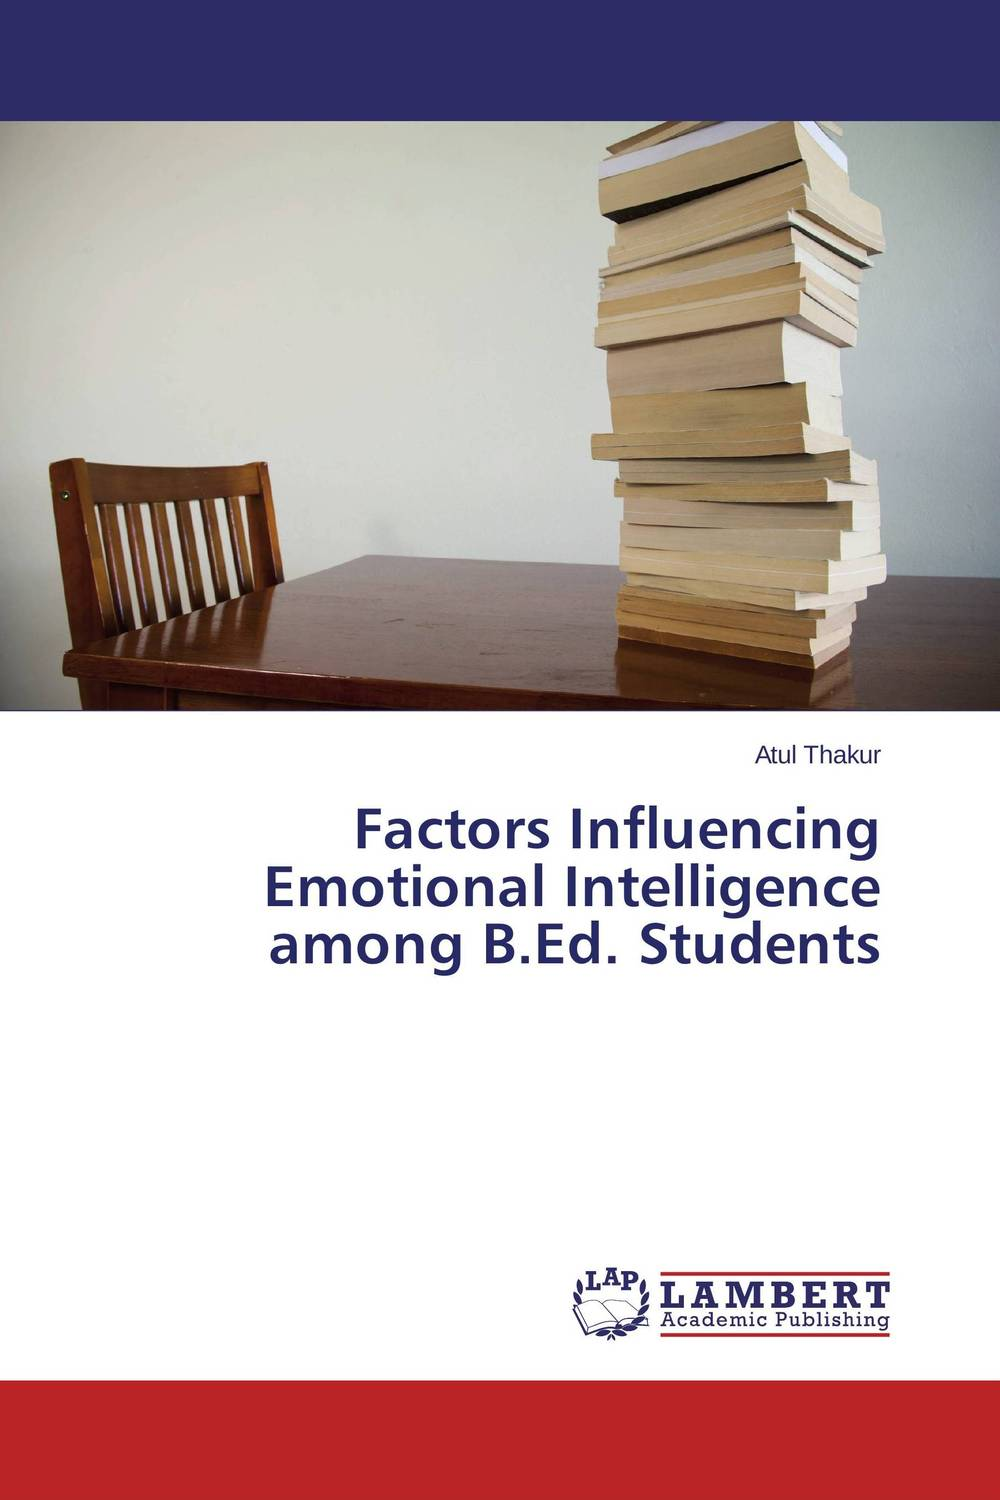 Factors Influencing Emotional Intelligence among B.Ed. Students  david butali namasaka factors influencing deviant socio cultural practices among adolescents